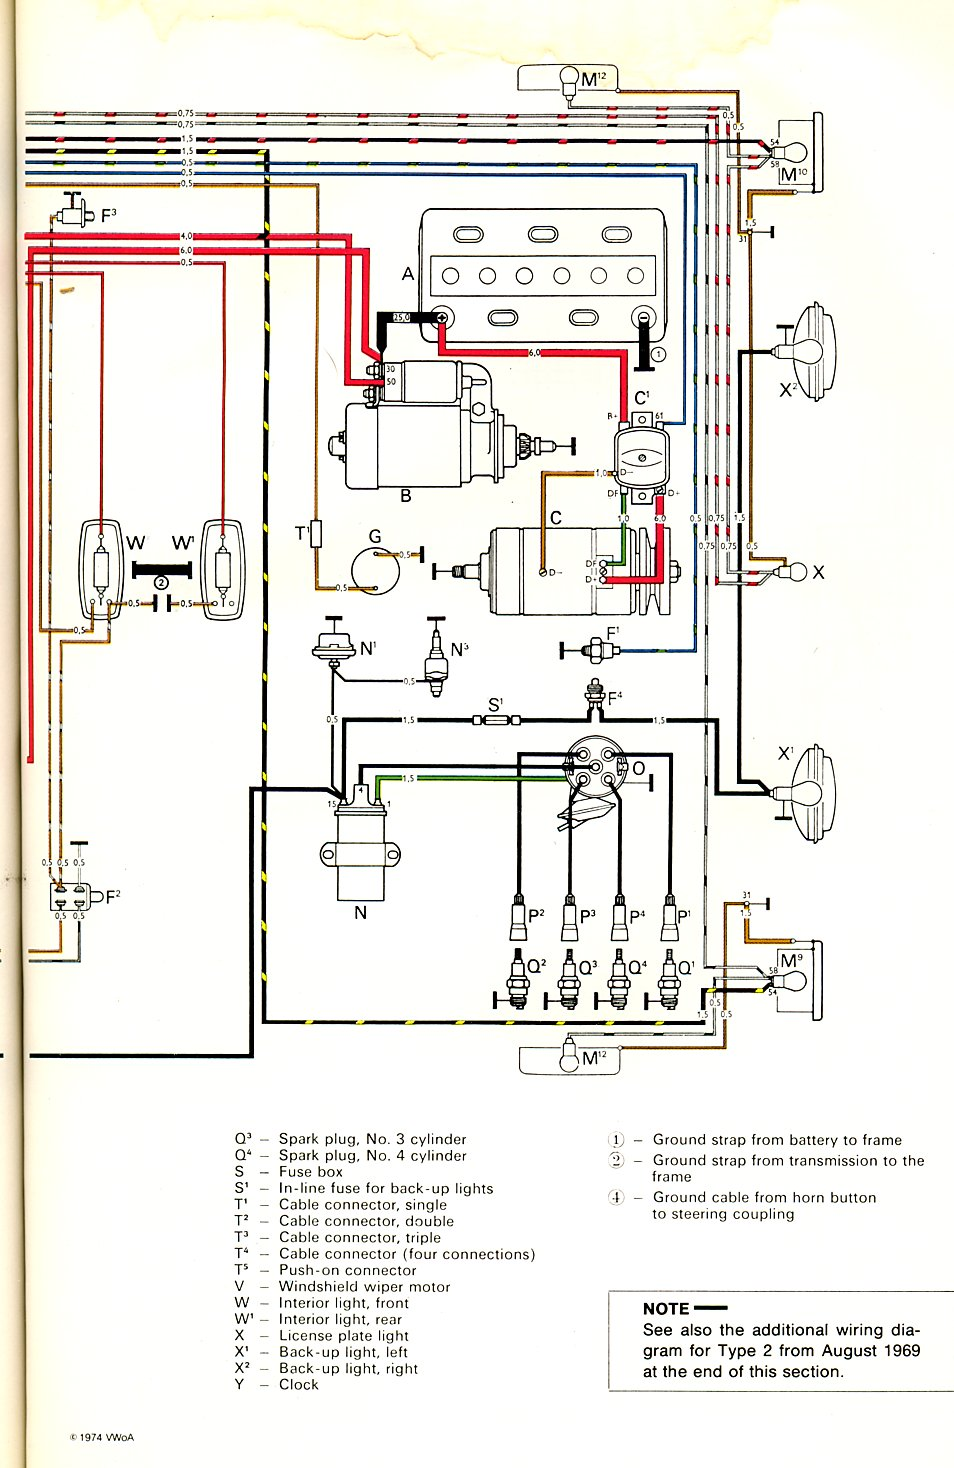 1963 vw double cab wiring diagrams 1970 bus wiring diagram | thegoldenbug.com 1963 ford industrial tractor wiring diagrams